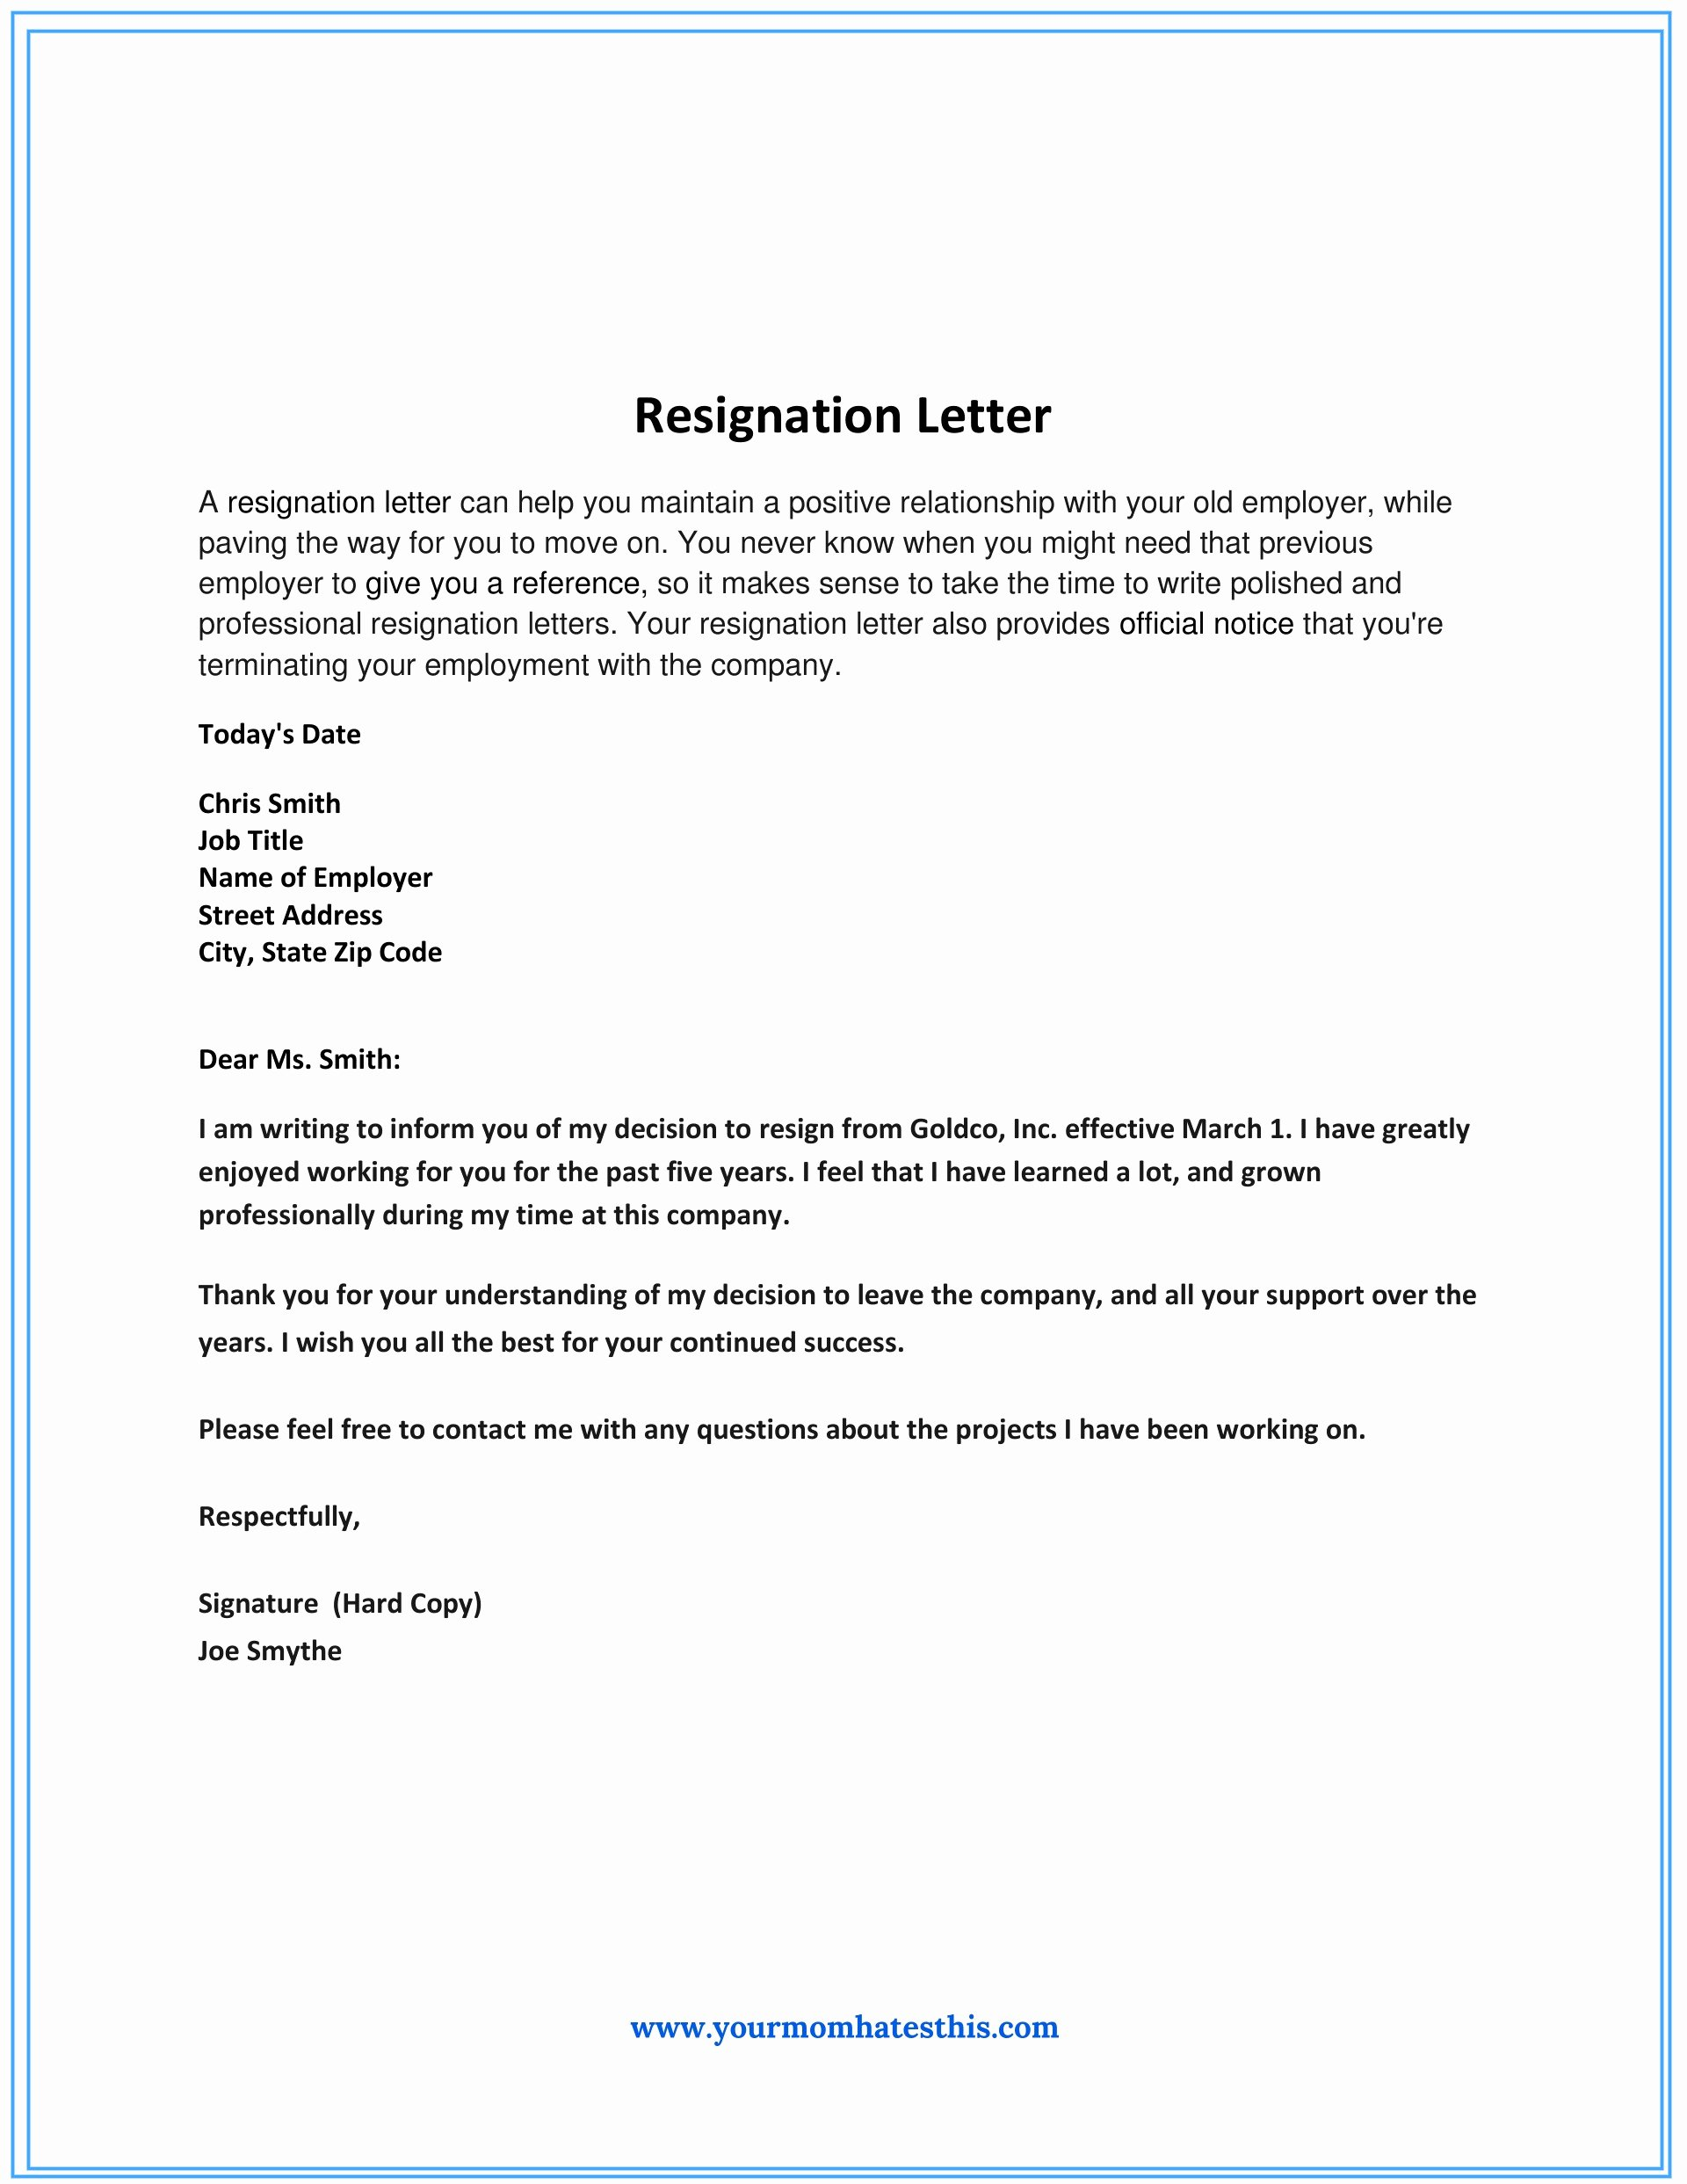 Resign Letter Sample Elegant Dos and Don'ts for A Resignation Letter